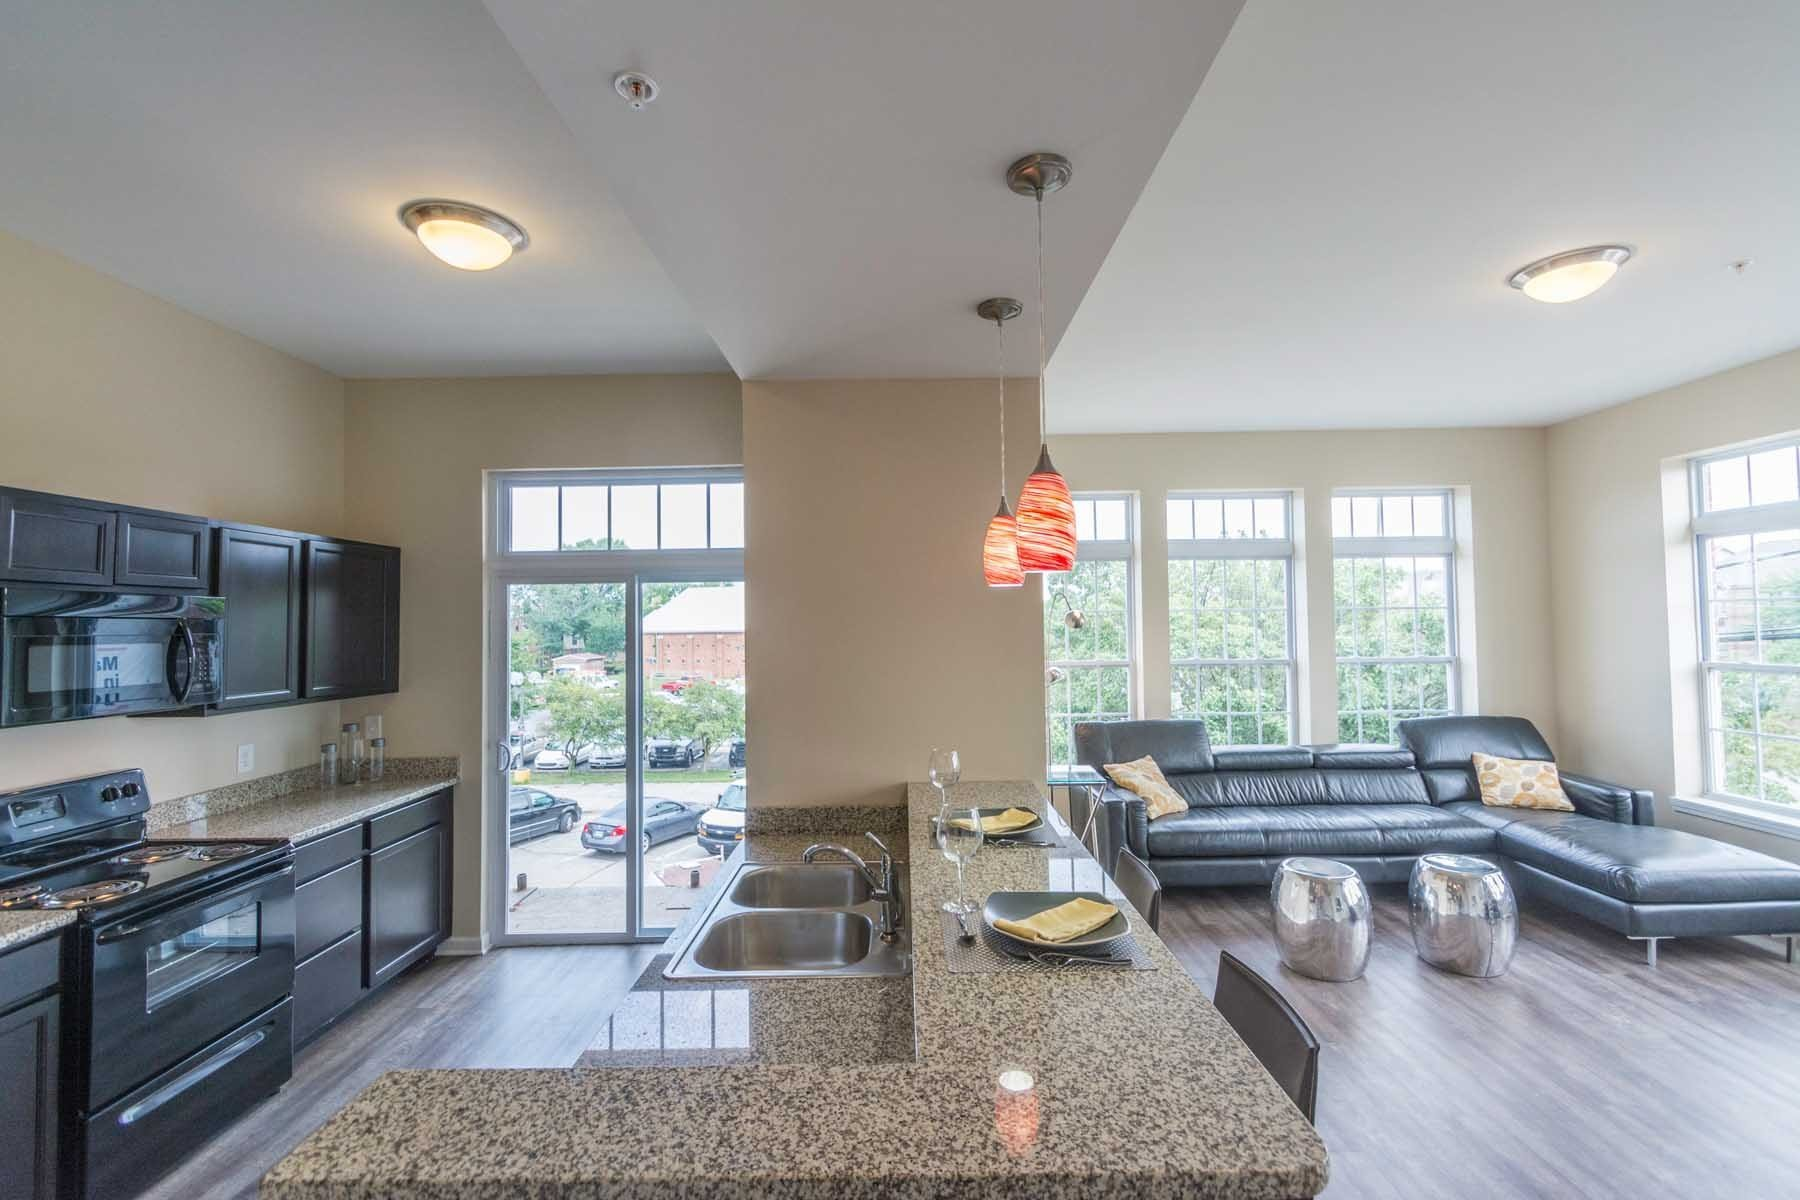 Best 632 Mlk Apartments – Downtown Indianapolis Apartments For Rent – Apartment Homes Rentals With Pictures